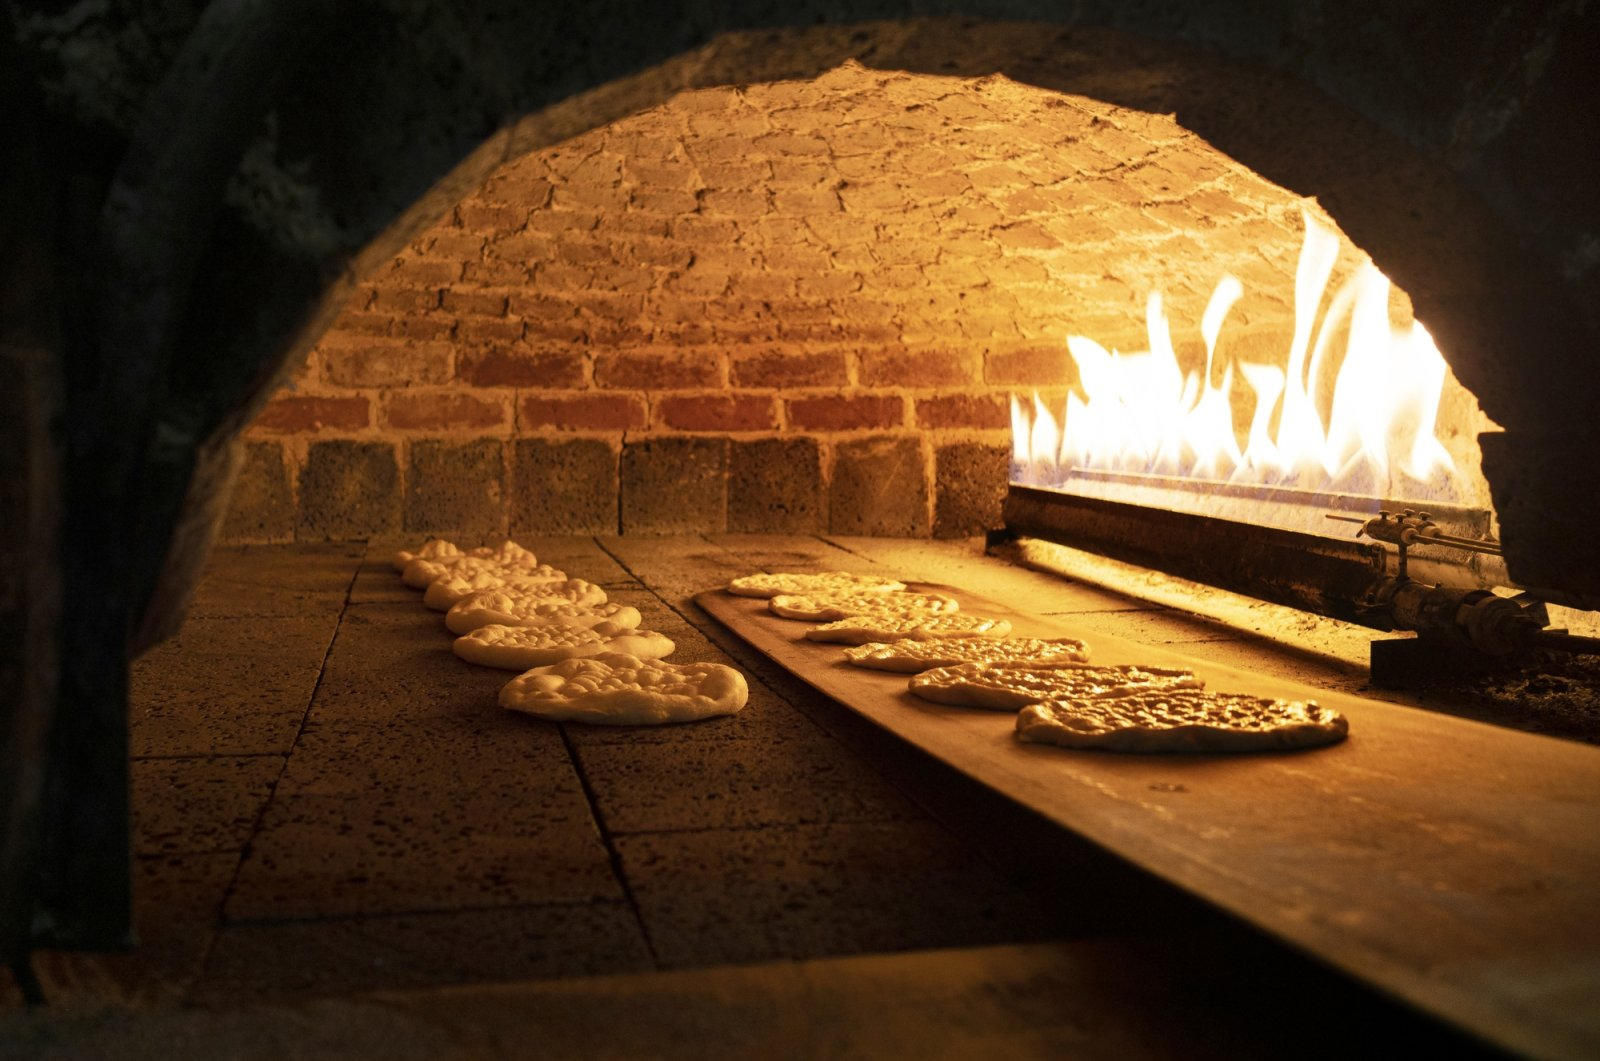 A lot of traditional Turkish breads are baked in wood-fired brick ovens, which keeps them airy and crispy. (iStock Photo)